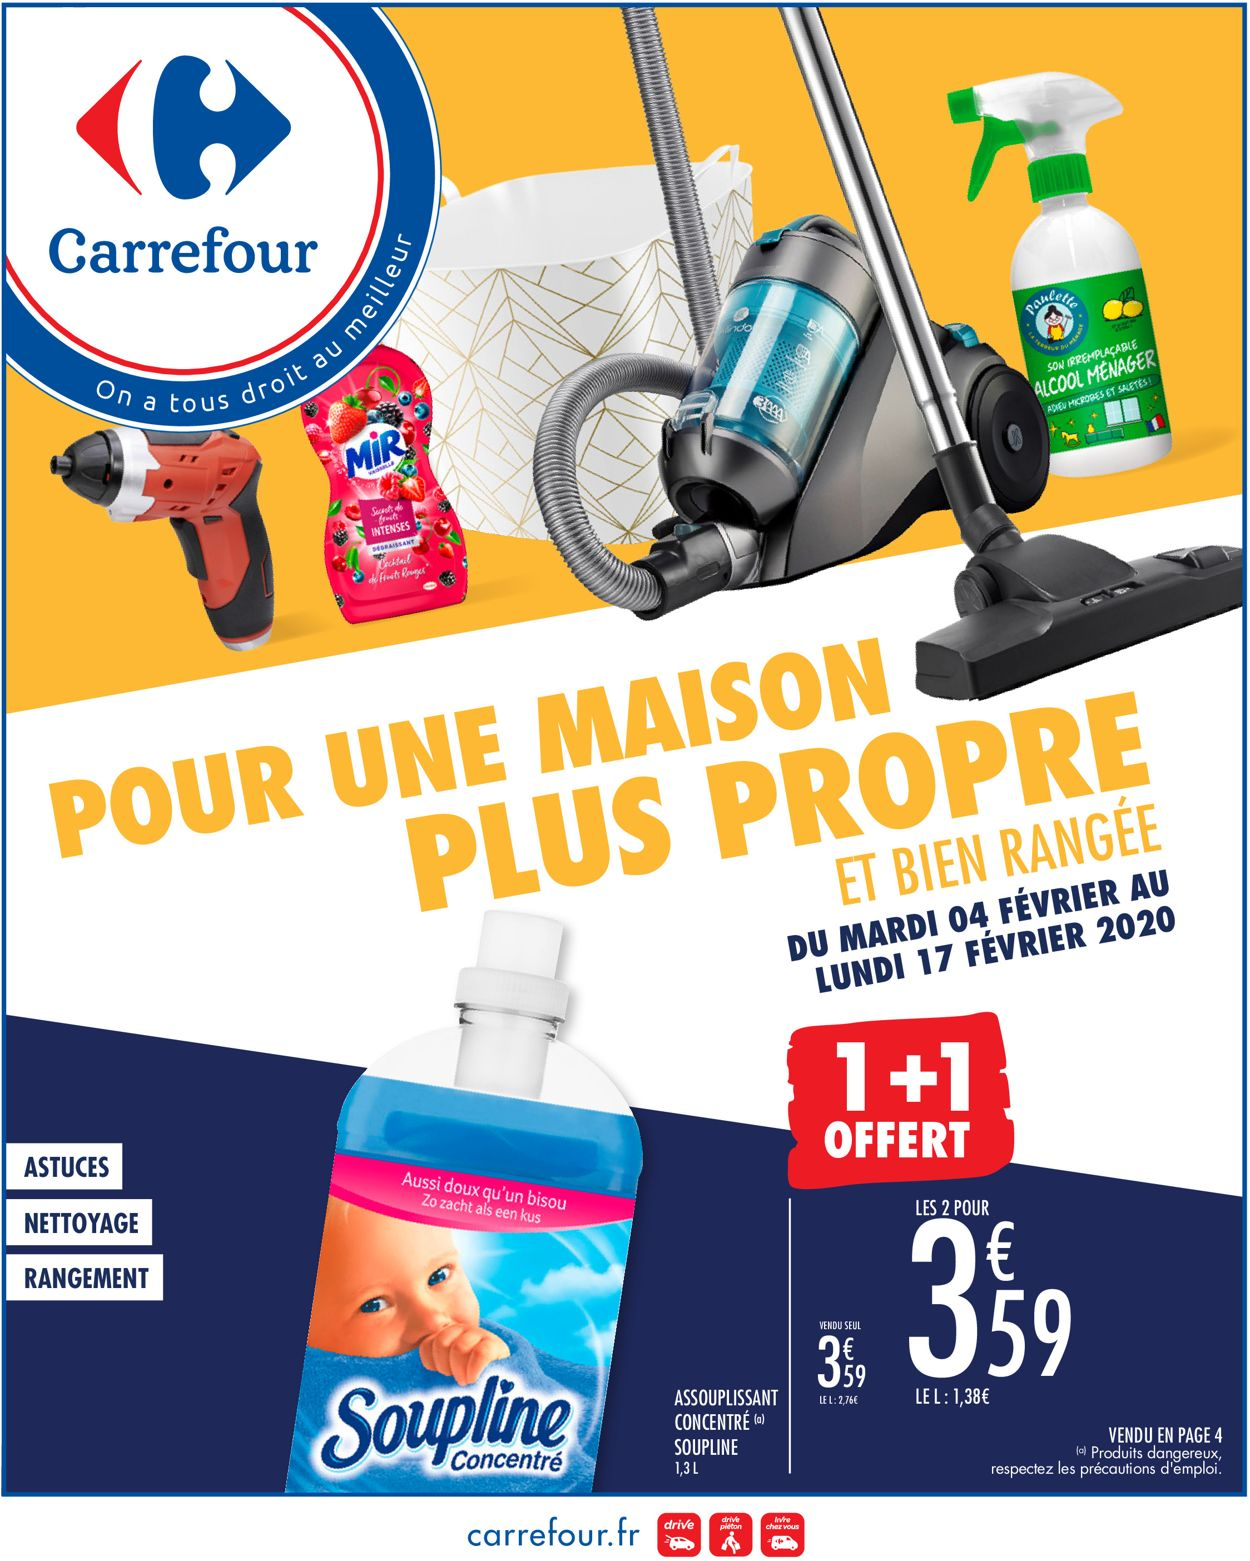 Carrefour Catalogue - 04.02-17.02.2020